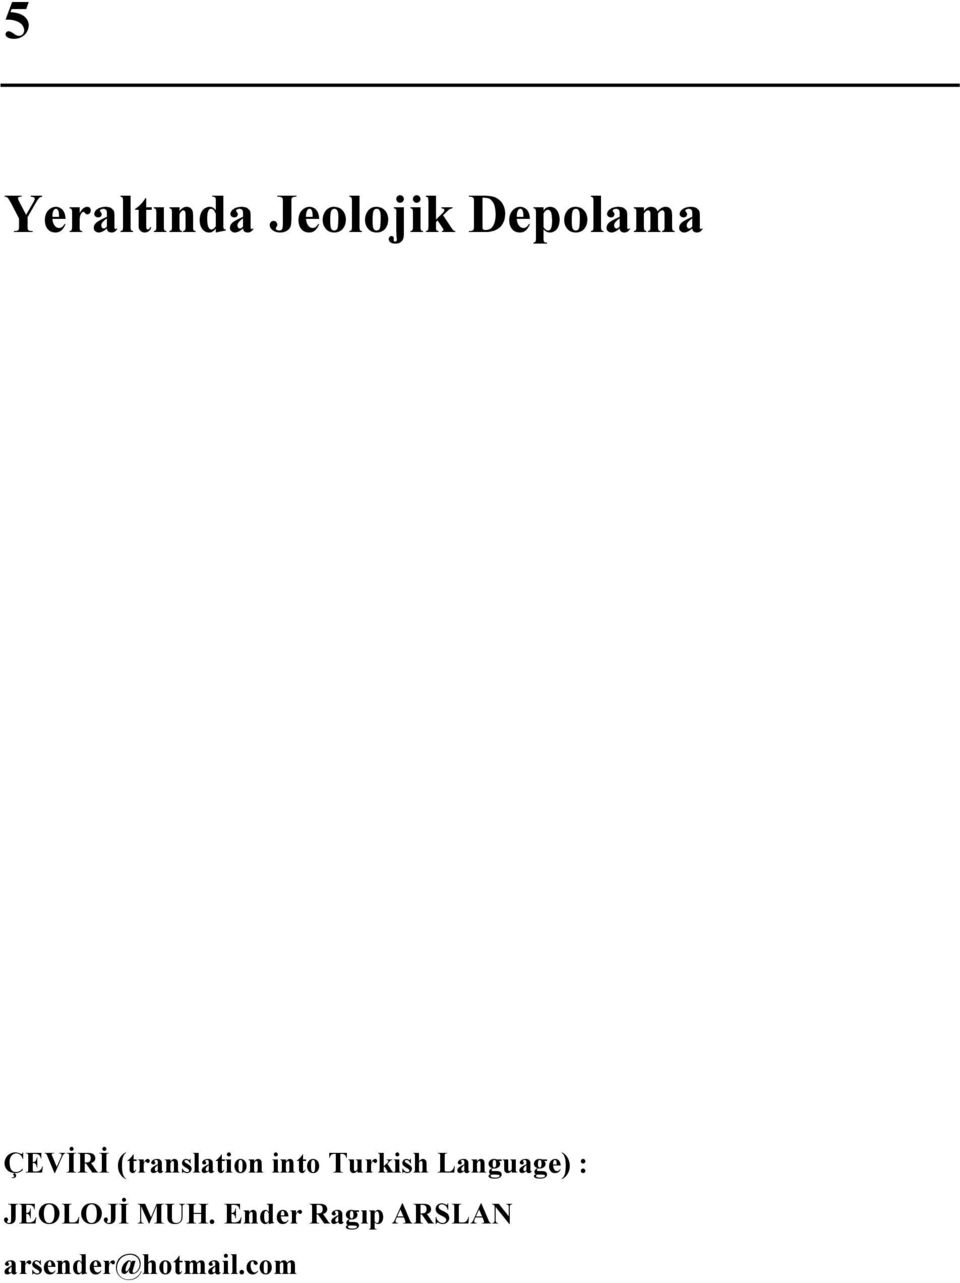 Turkish Language) : JEOLOJİ MUH.